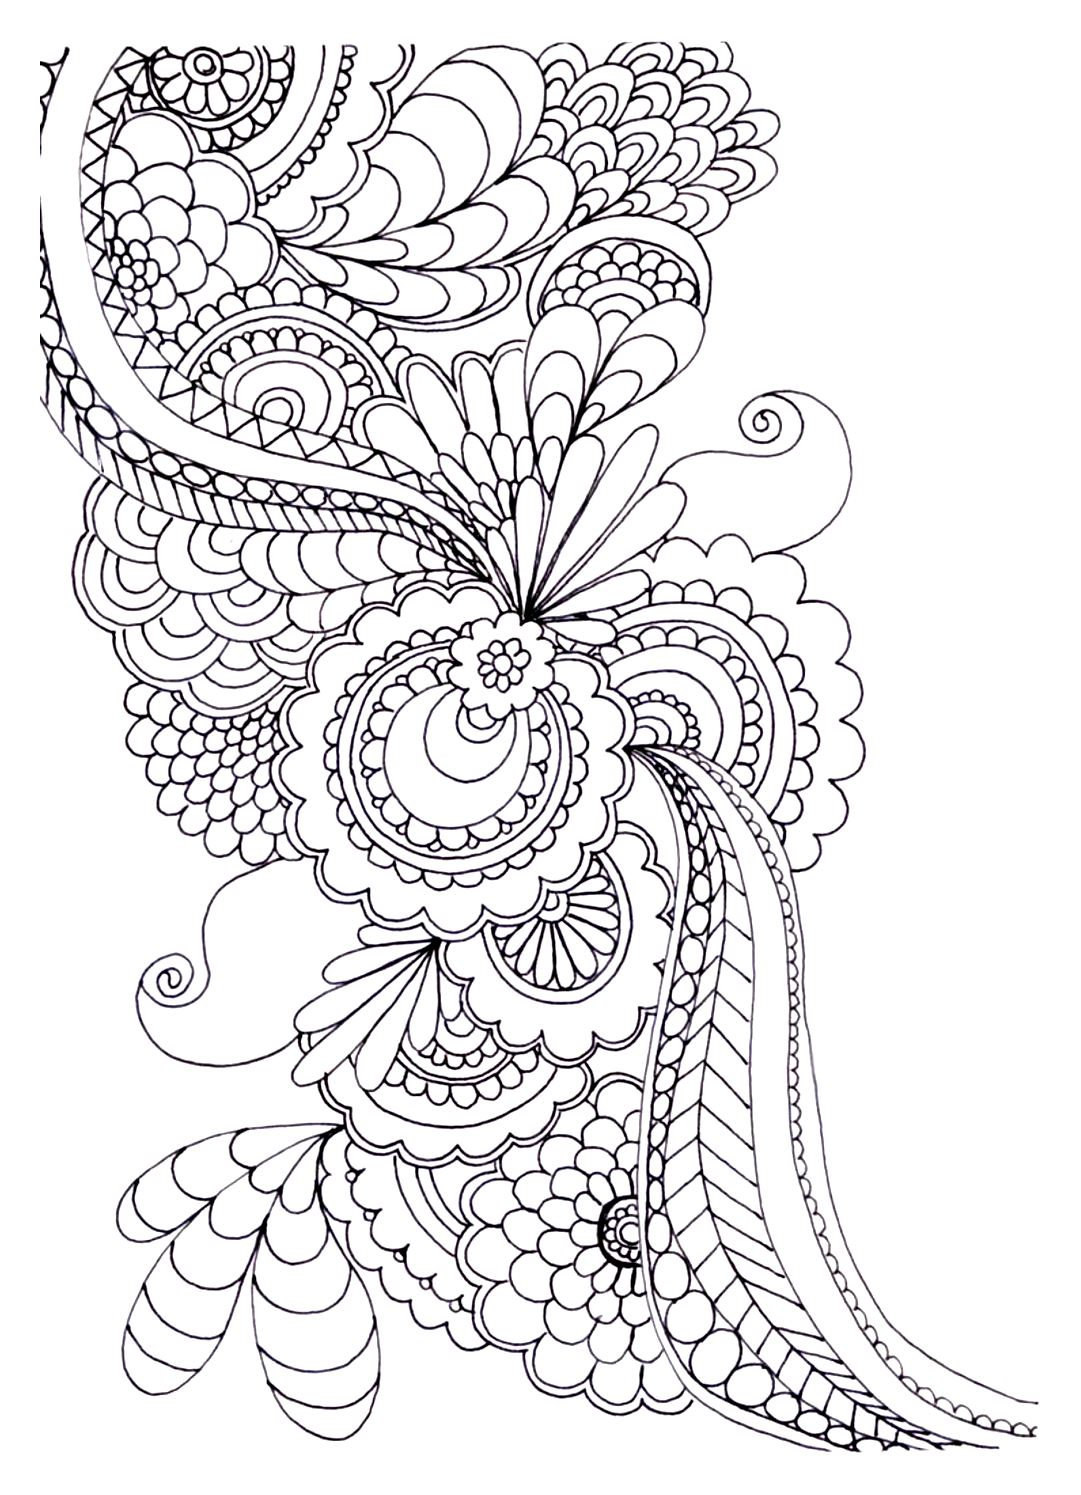 20 free adult colouring pages the organised housewife for Coloring pages to print for adults